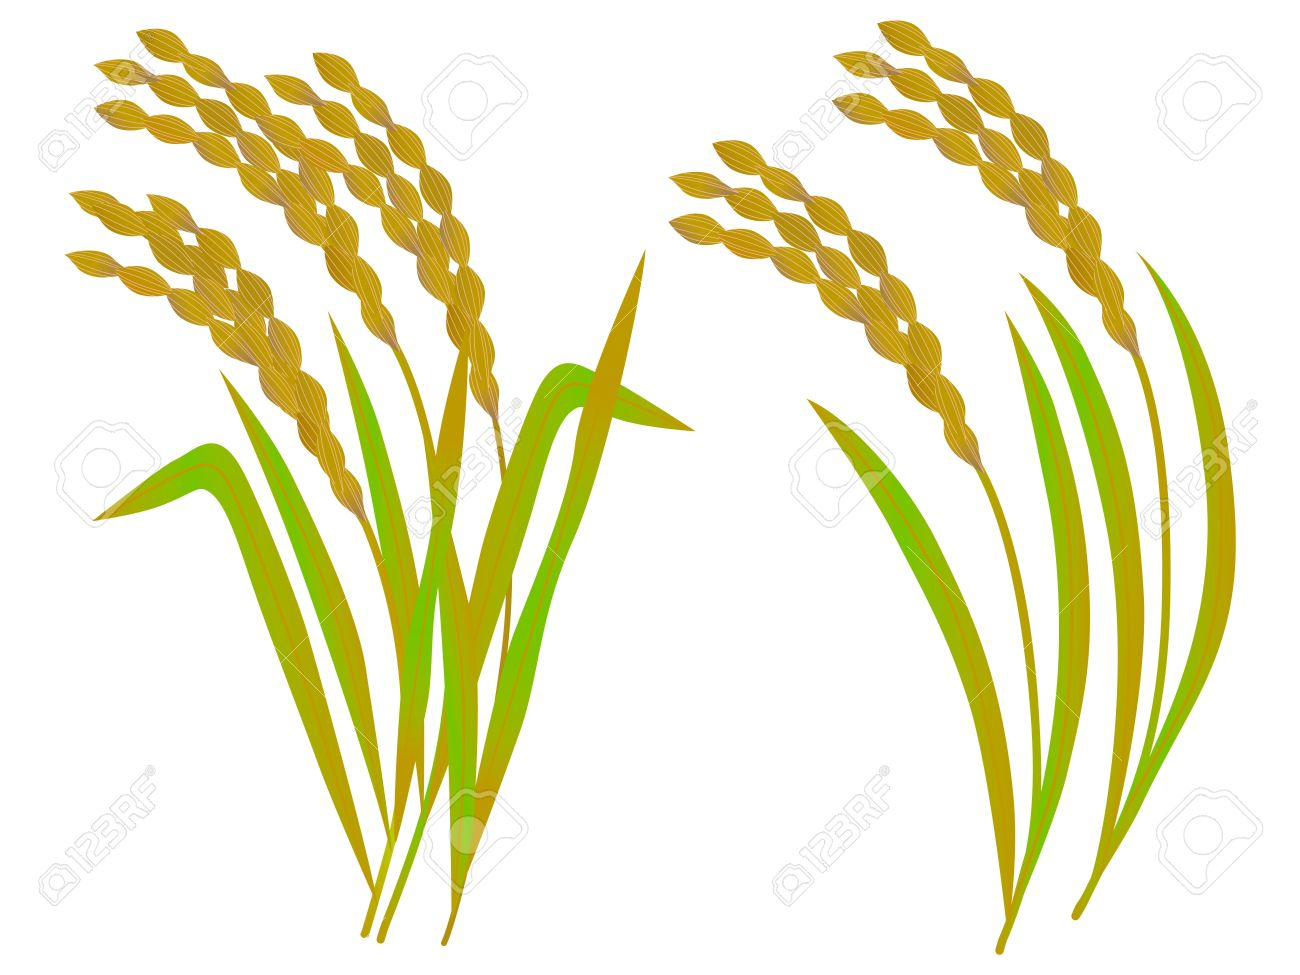 The Illustration Of Rice Royalty Free Cliparts, Vectors, And Stock.